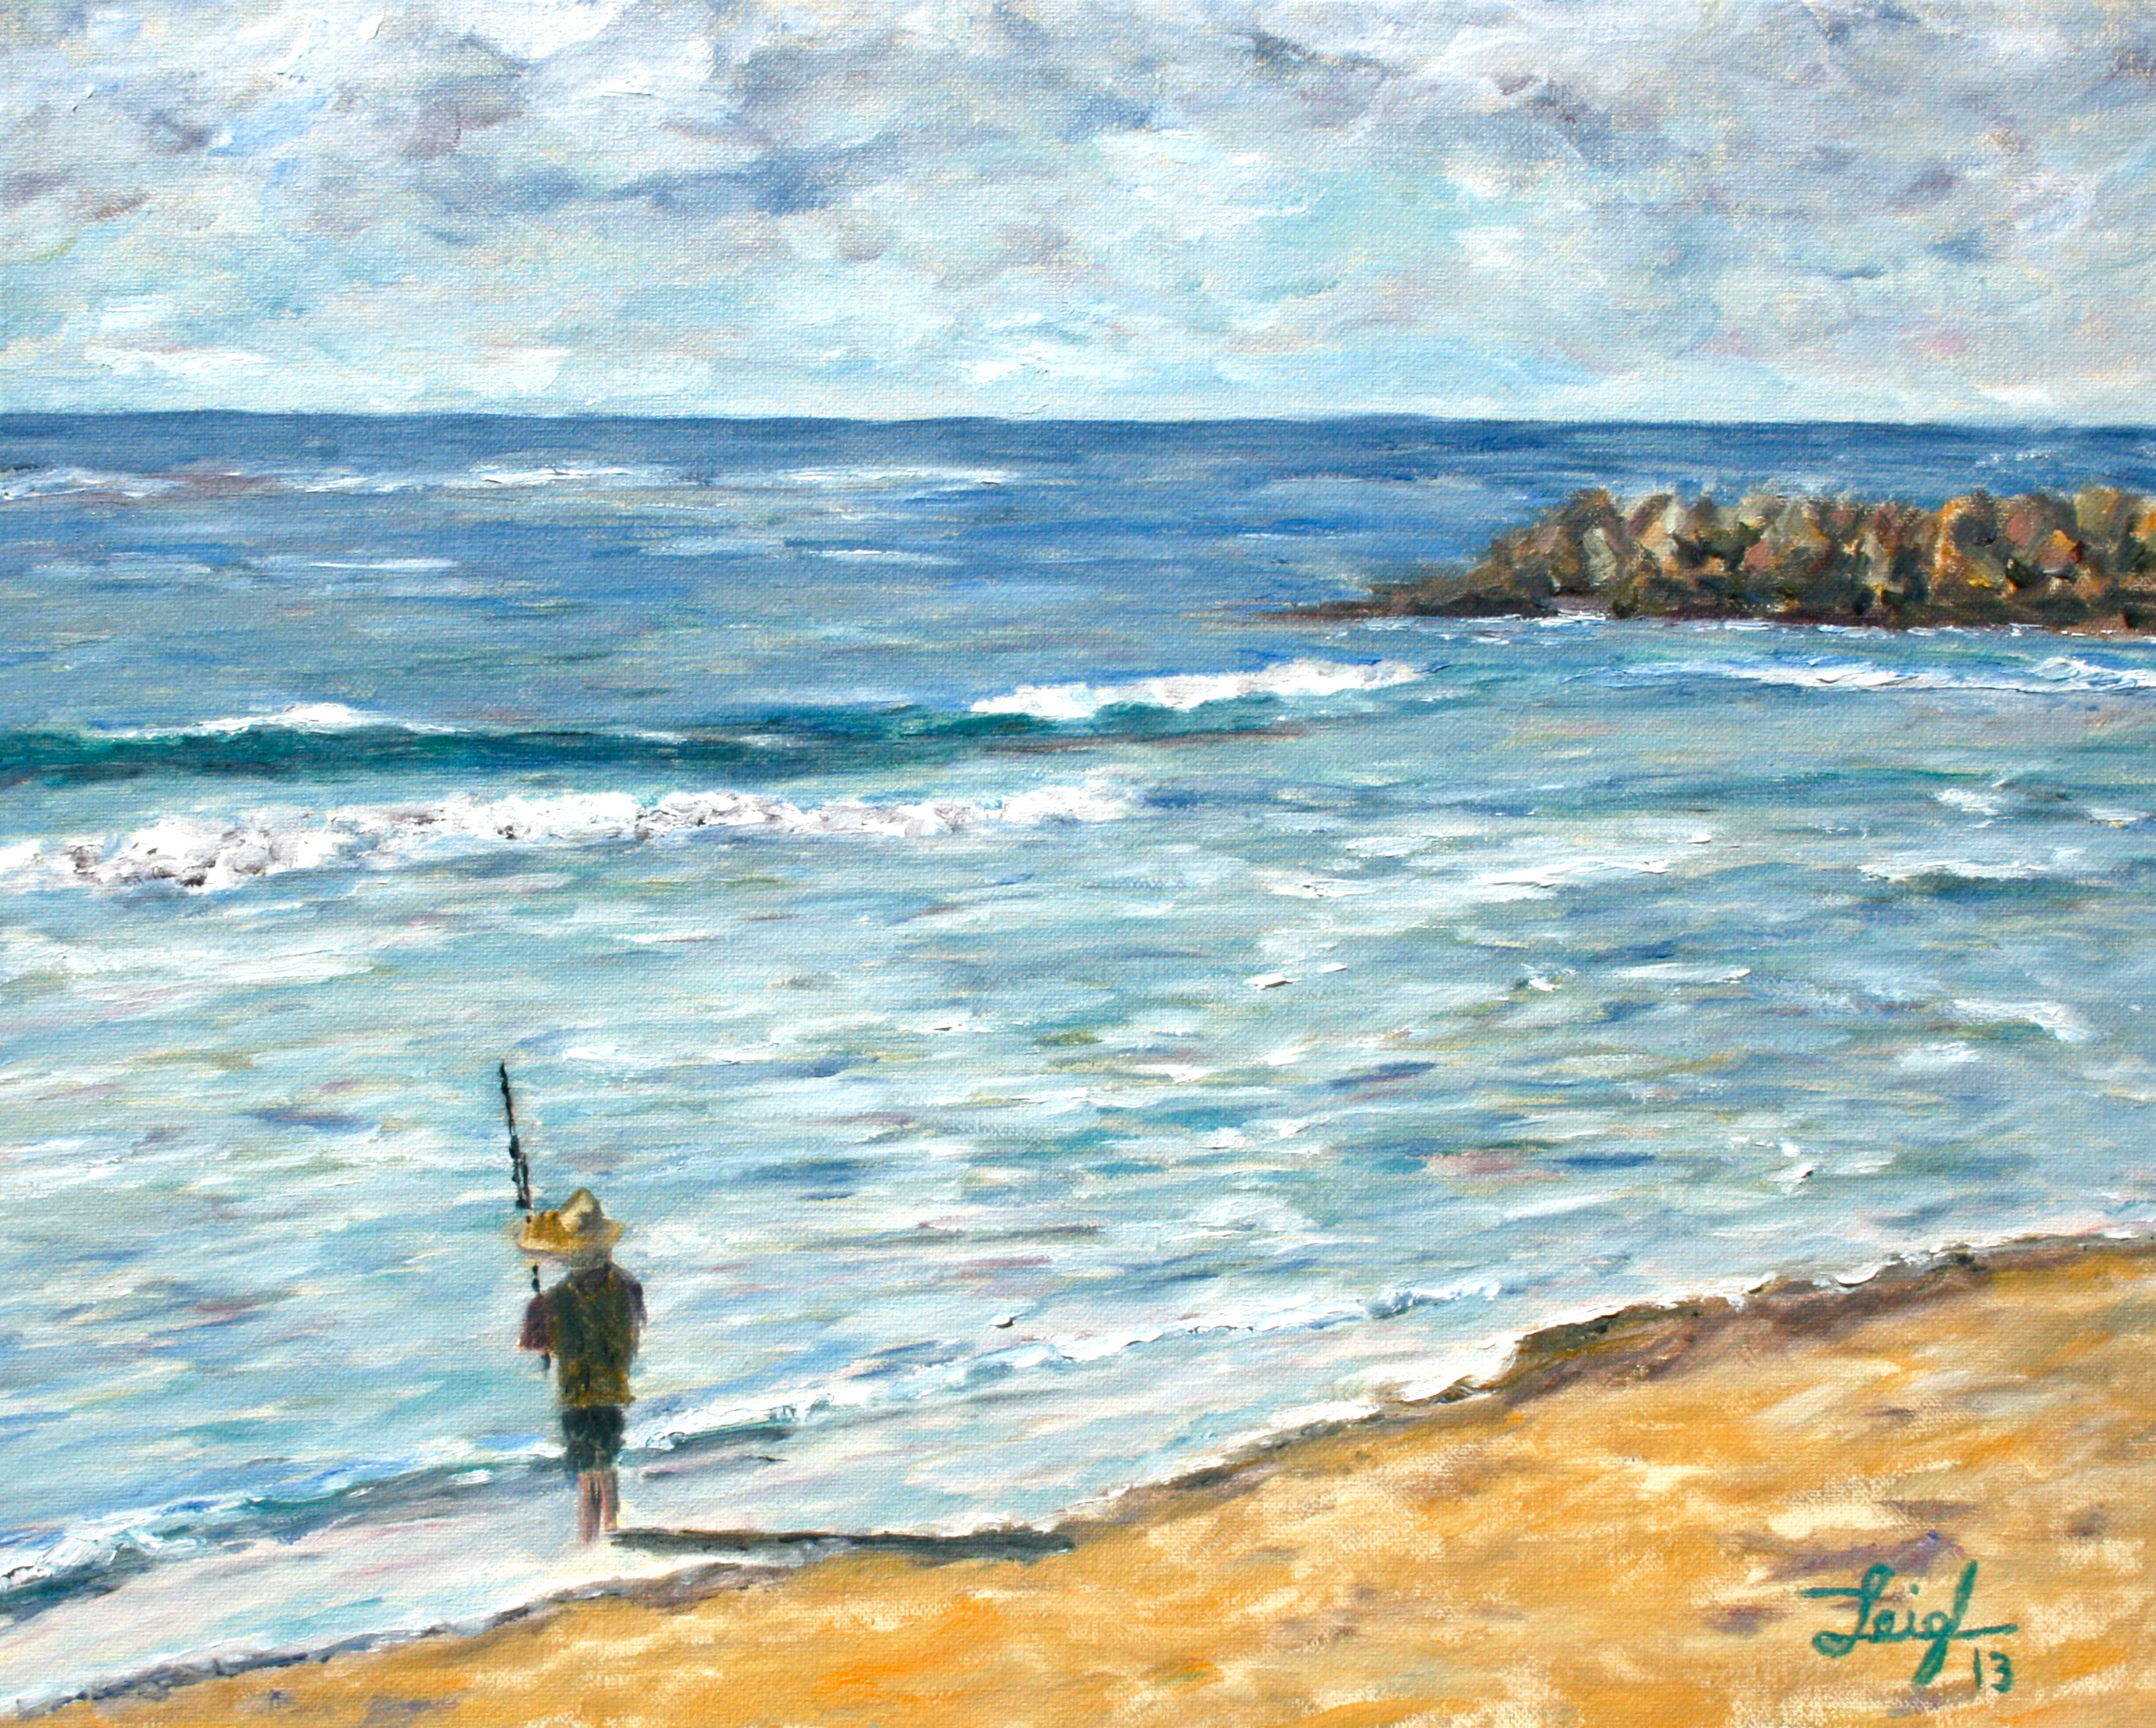 Shore Fishing at Warm Waters  ~   Jenni Schaefer, Austin, TX 2013 • 20 x 16